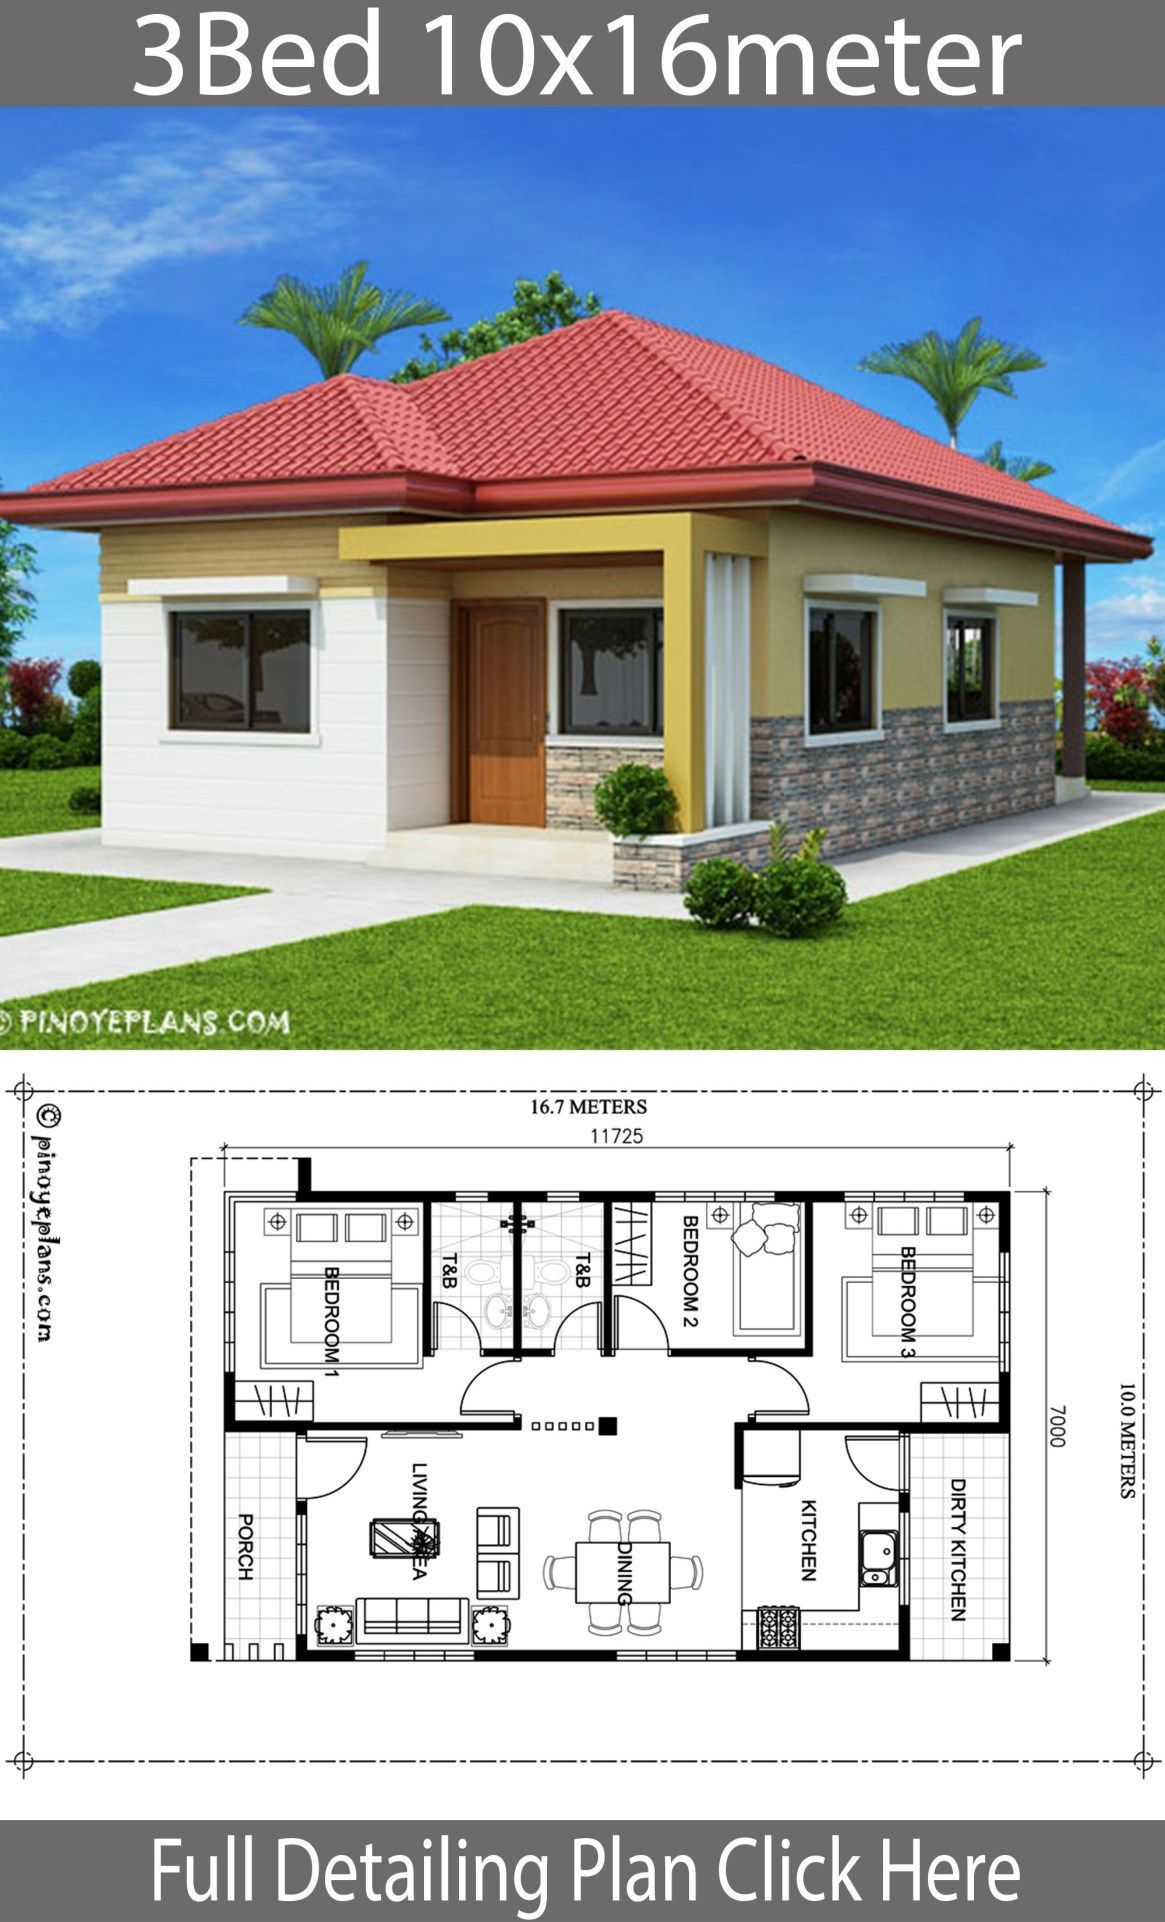 Home Design 10x16m With 3 Bedrooms Mit Bildern House Plan Gallery Affordable House Plans My House Plans